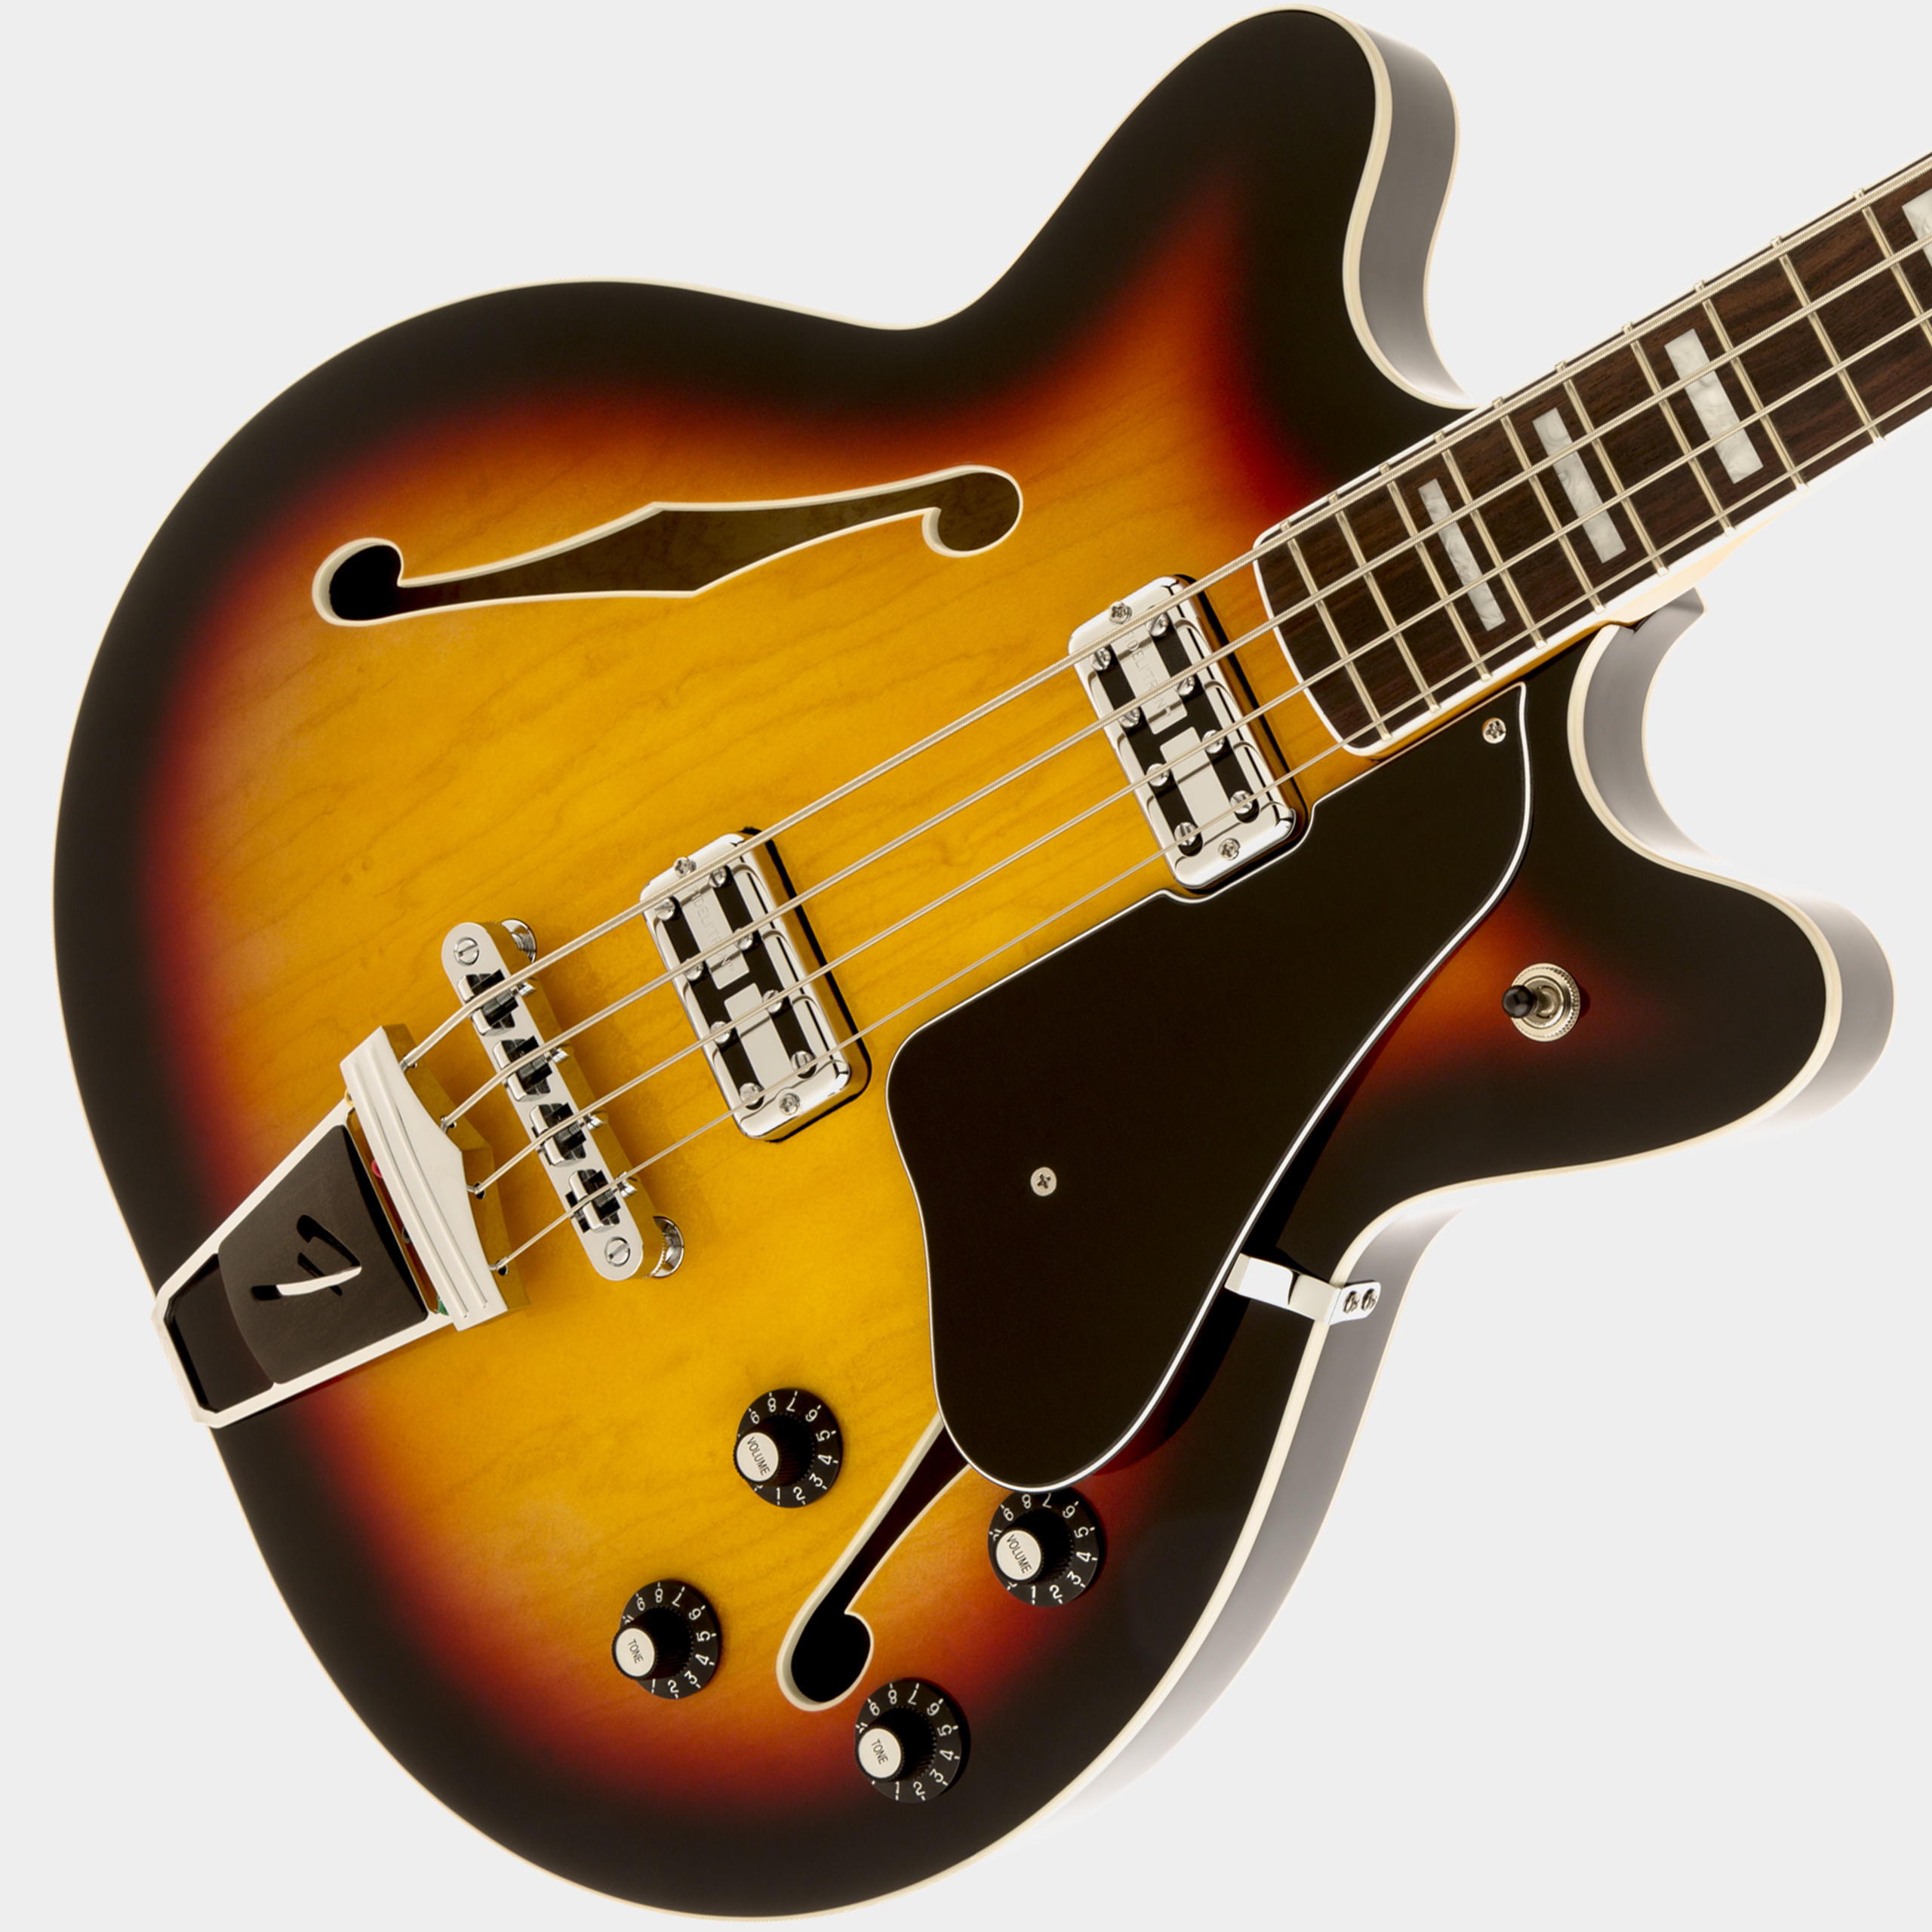 FENDER Modern Player Coronado Bass 3-Color Sunburst Korpus